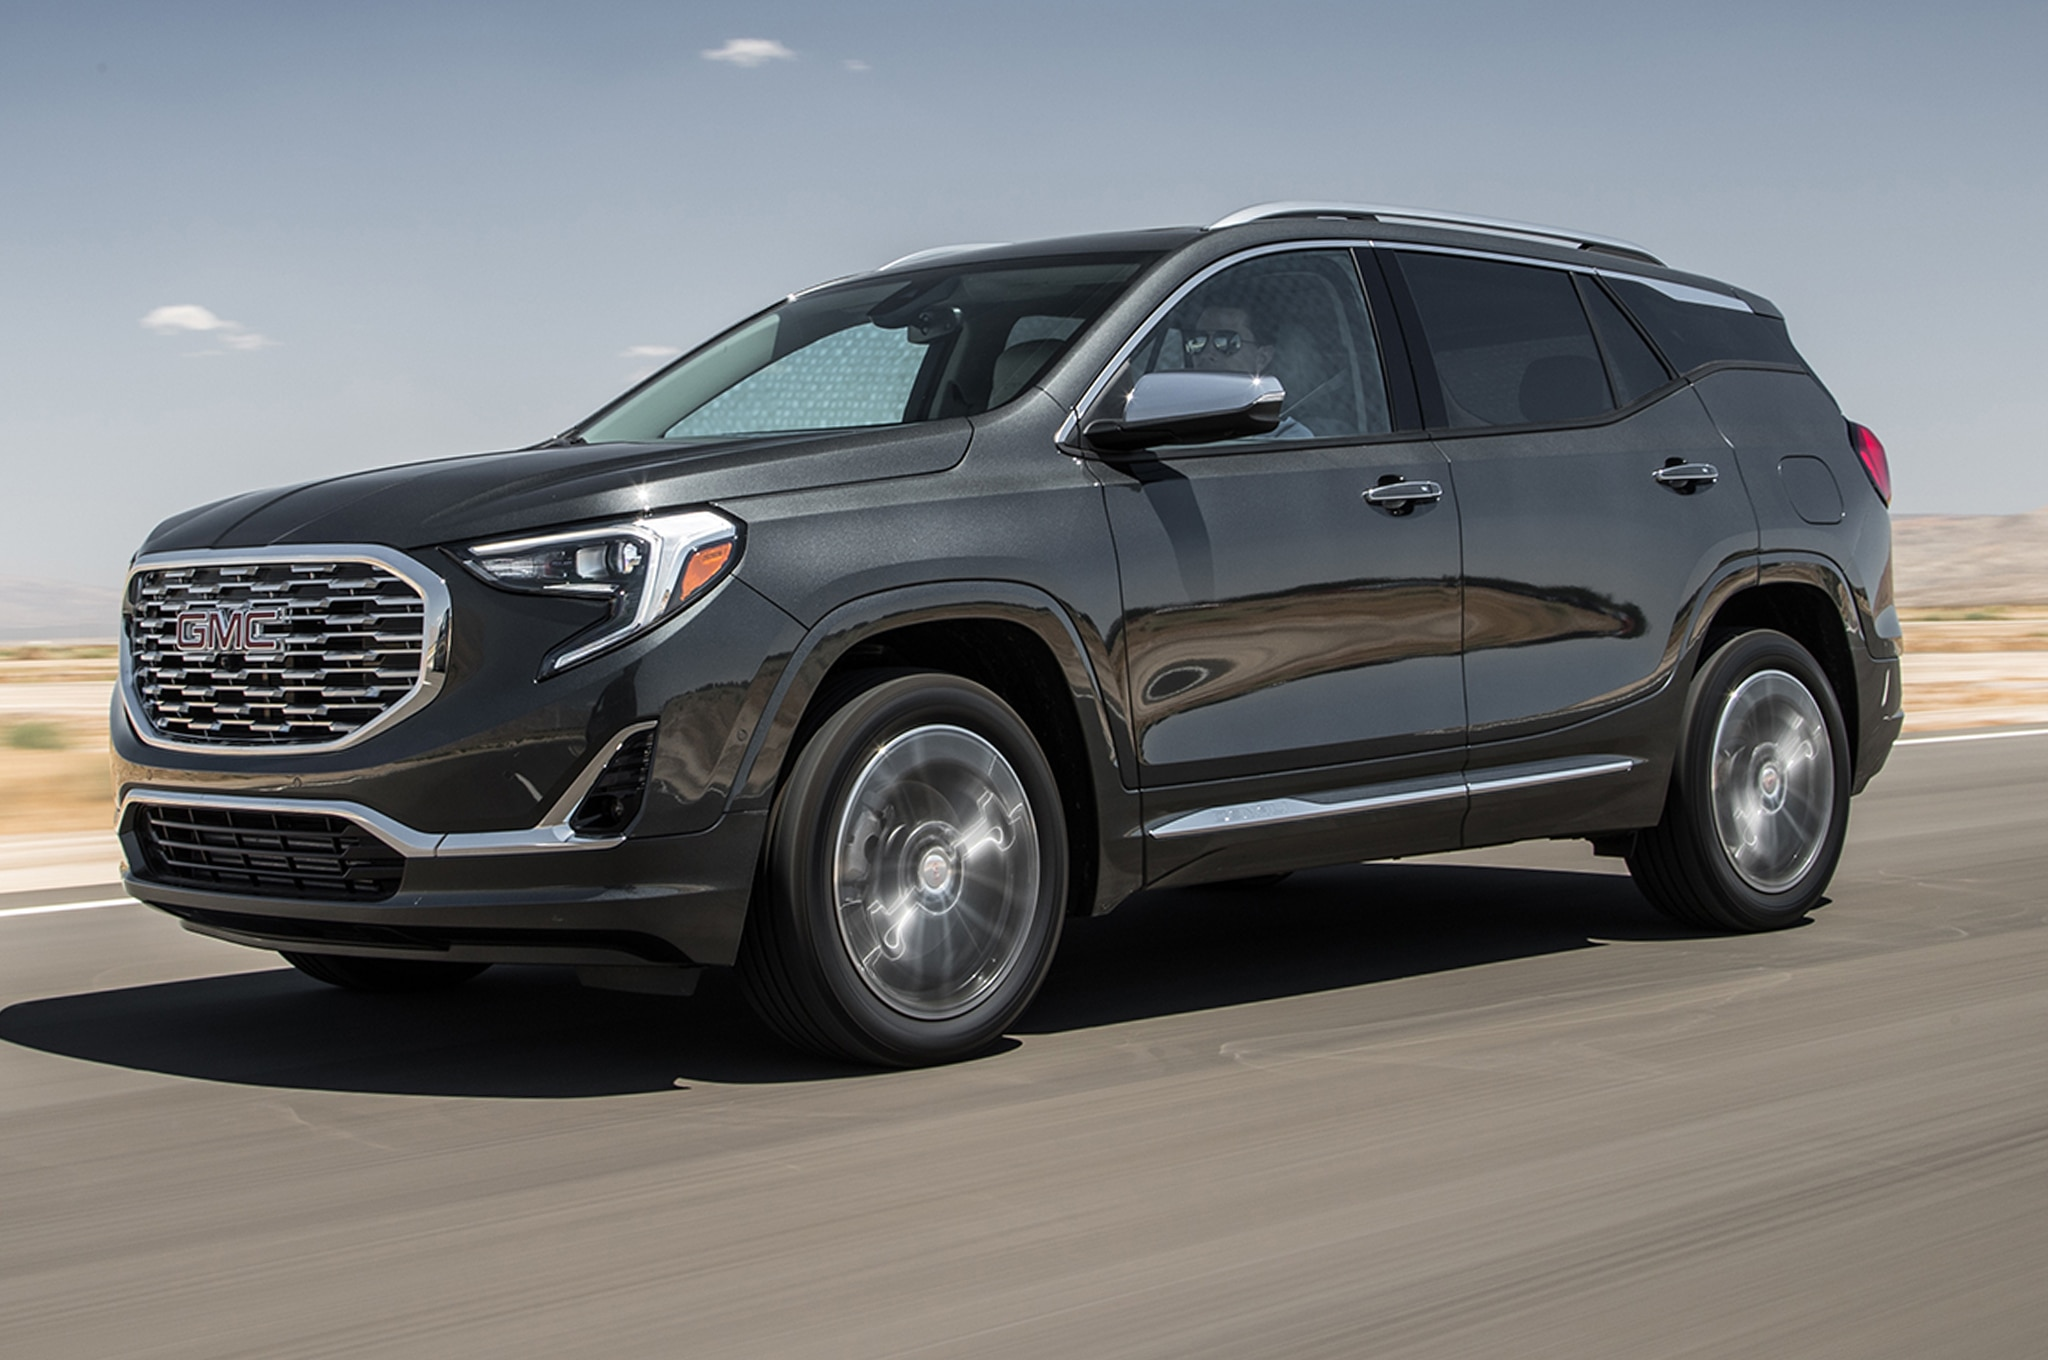 2018 GMC Terrain Front Three Quarter In Motion 01 1